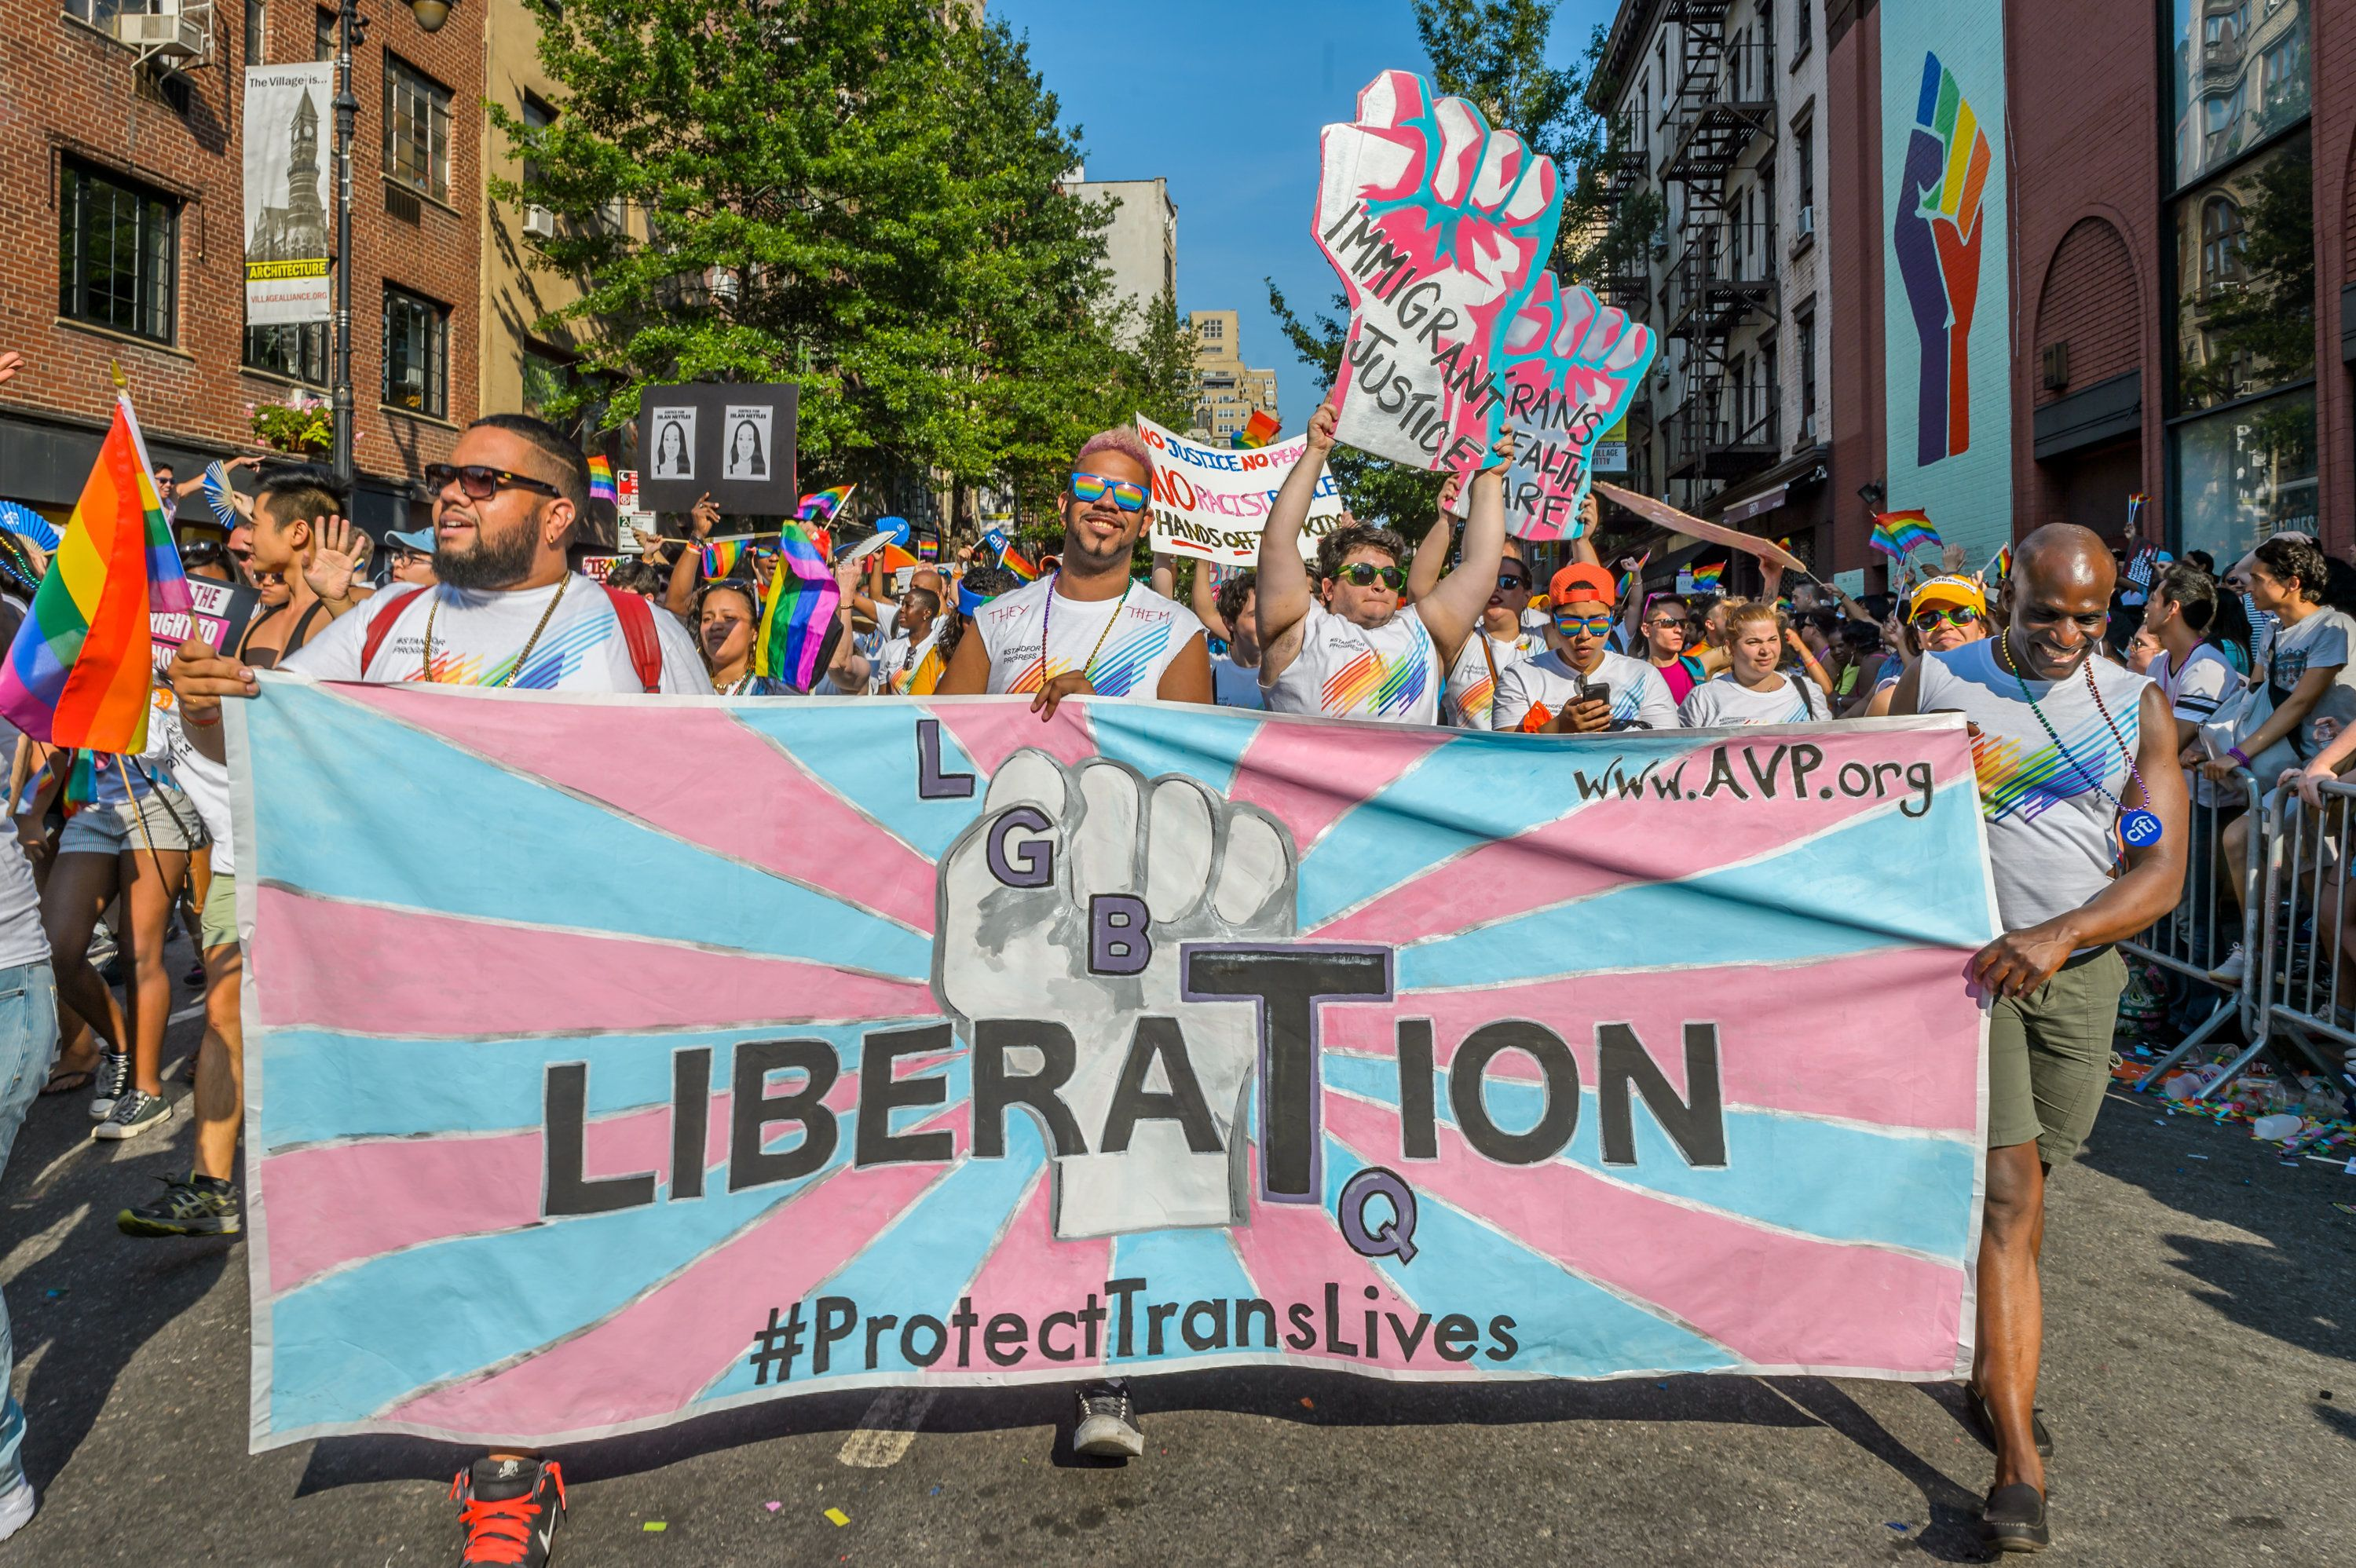 GAY PRIDE PARADE, NEW YORK, UNITED STATES - 2016/06/26: Thousands of people came out and commemorate the 46th anniversary of the first Pride March with the largest Pride March in the country. This event is the largest for the LGBT community. The first March was held in 1970 and has since become an annual civil rights demonstration. Over the years its purpose has broadened to include recognition of the fight against AIDS and to remember those we have lost to illness, violence and neglect. The March is a celebration of our lives and our community. (Photo by Erik McGregor/Pacific Press/LightRocket via Getty Images)